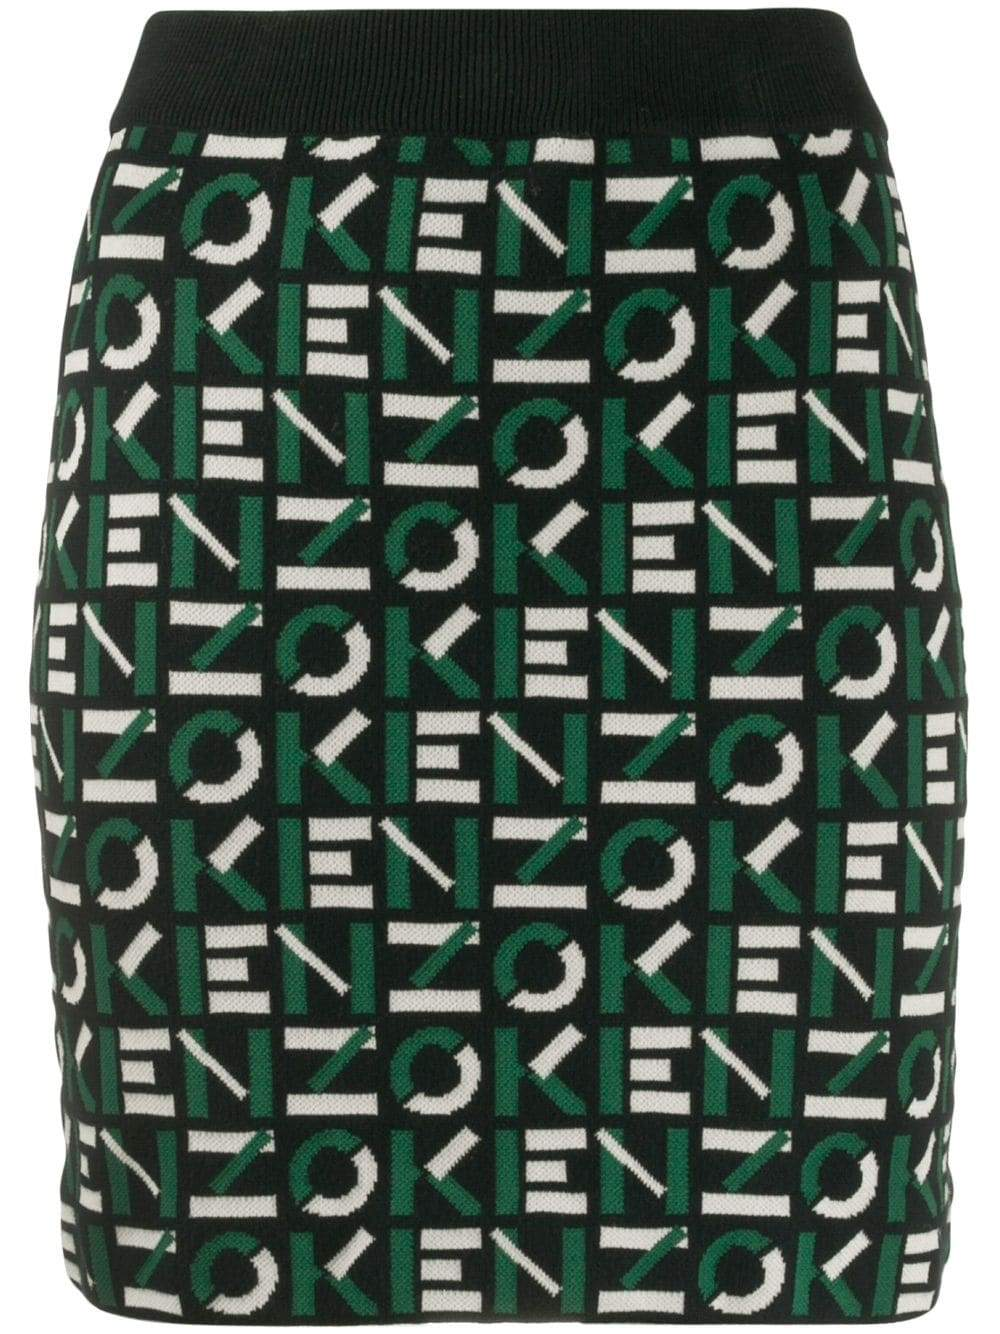 KENZO WOMEN All Over Logo Skirt Navy